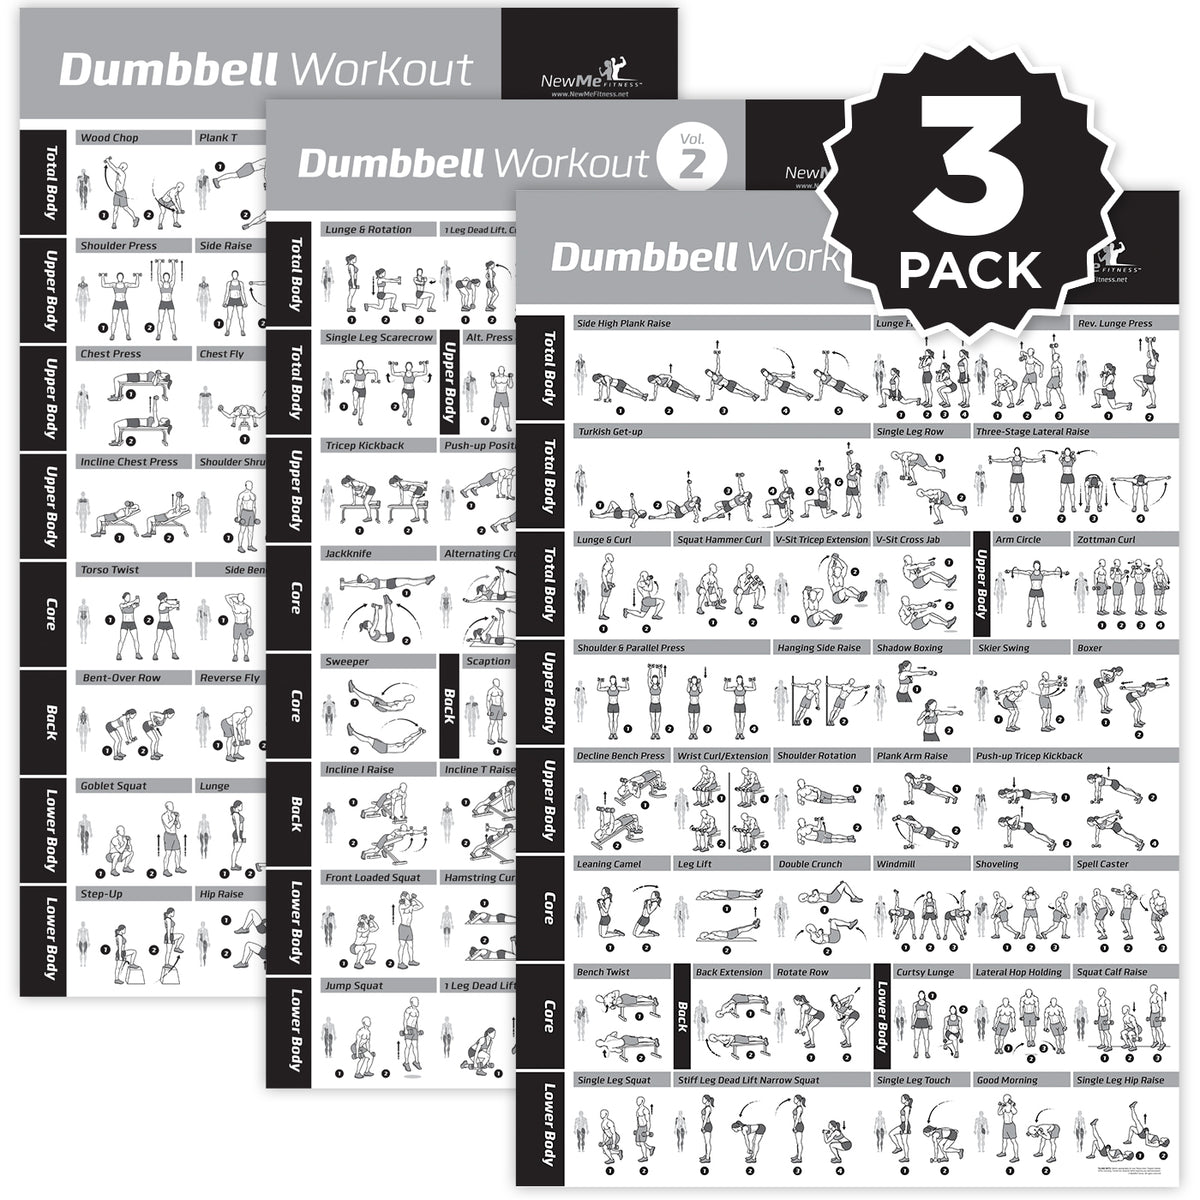 Dumbbell Exercise Poster Vol 1 2 3 3 Pack Laminated 20